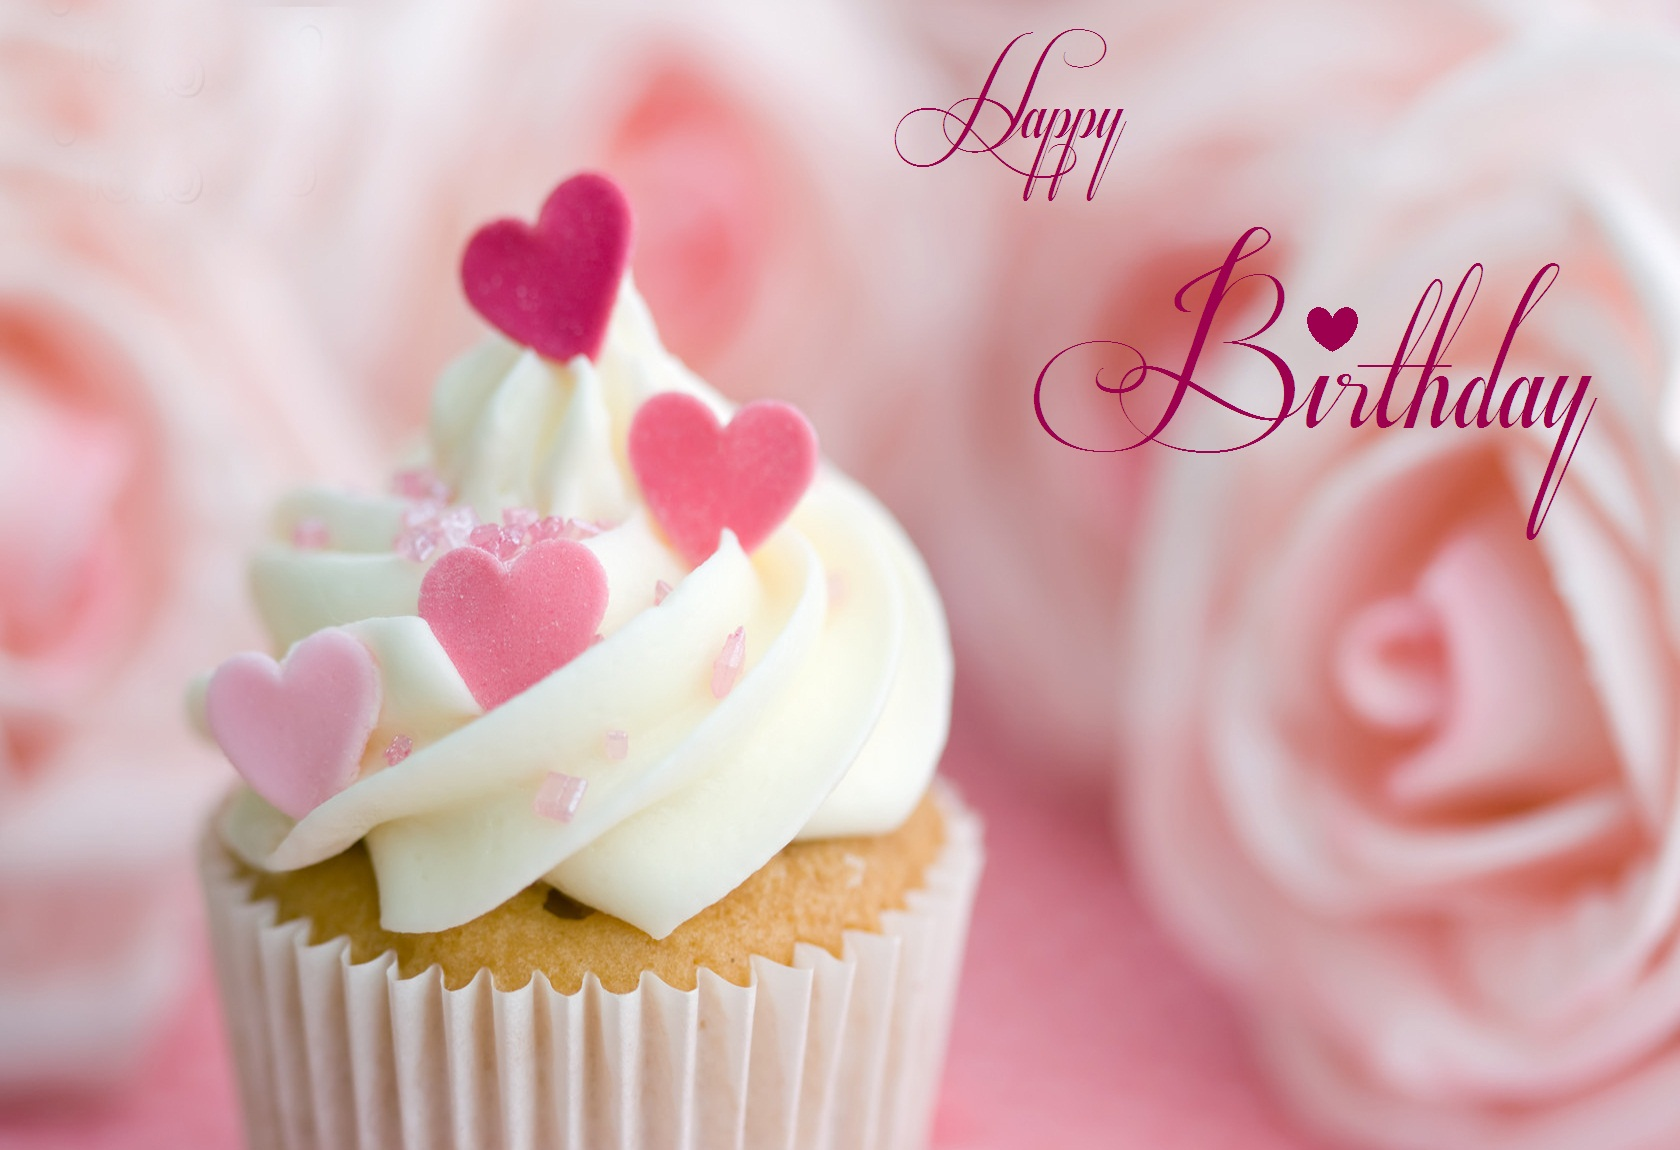 birthday message wallpaper ; happy-birthday-cupcakes-with-heart-topings-jpg